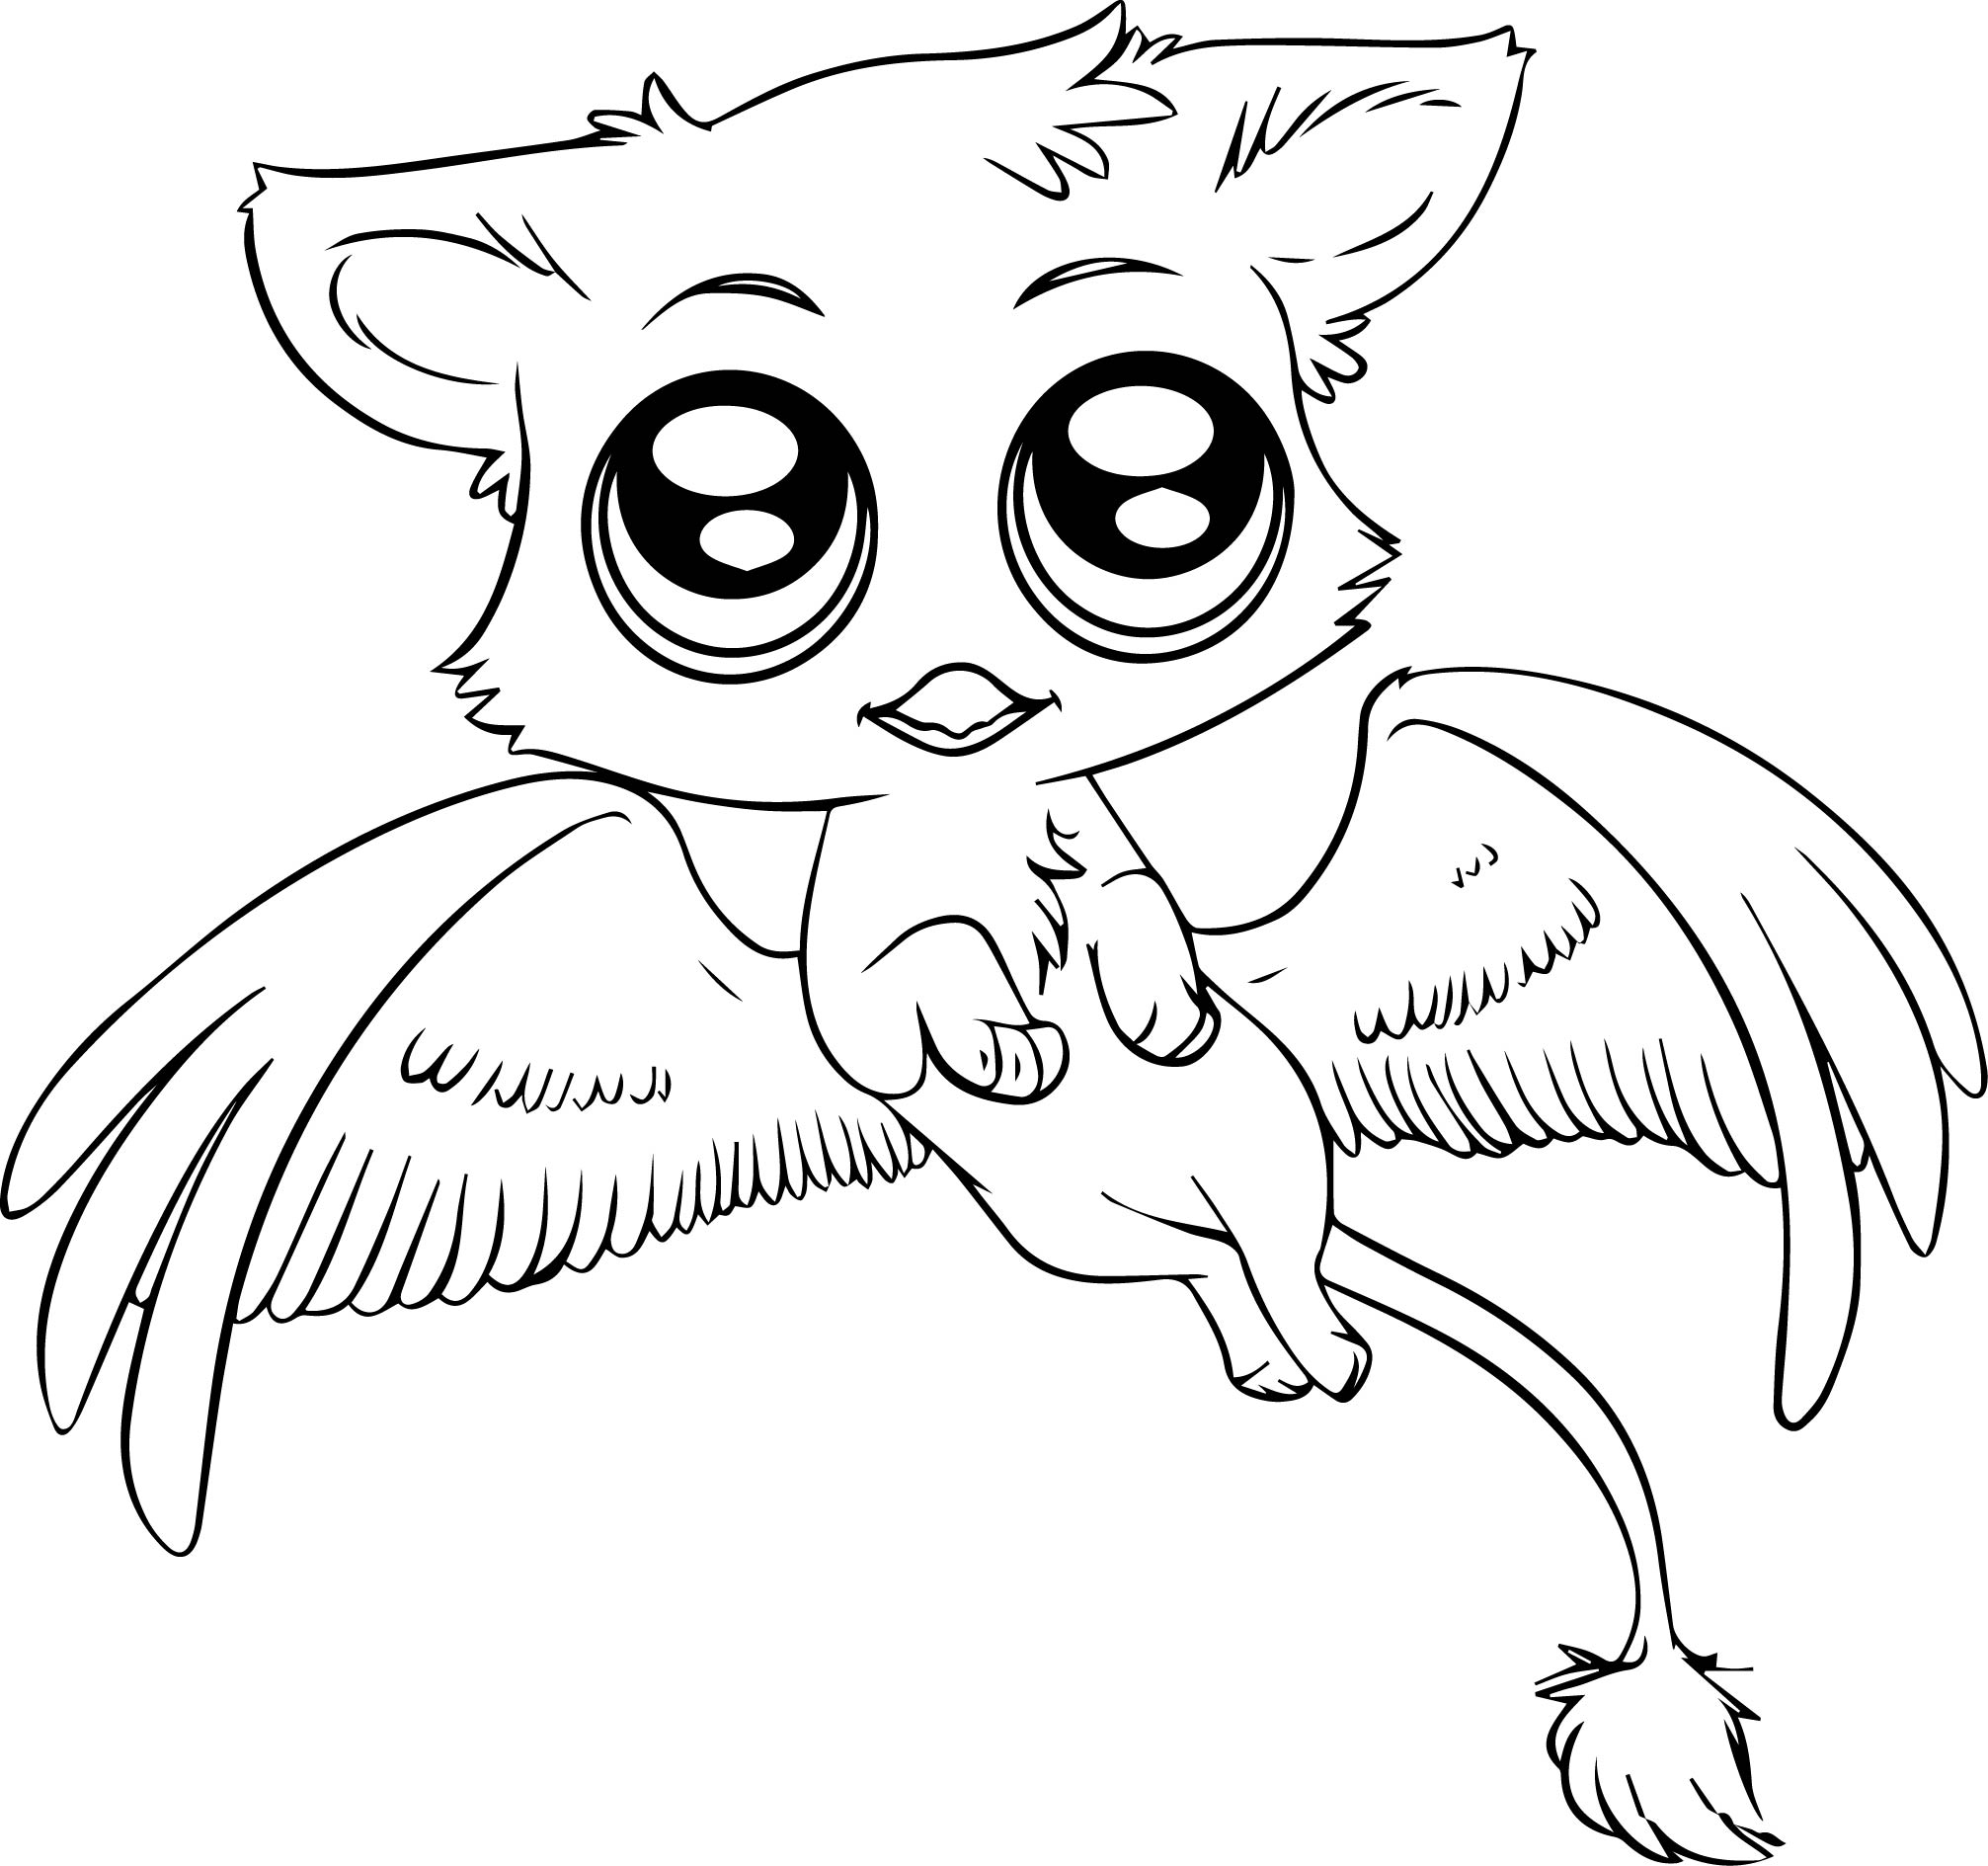 2013x1889 Cute Baby Animal Coloring Pages Bloodbrothers Download